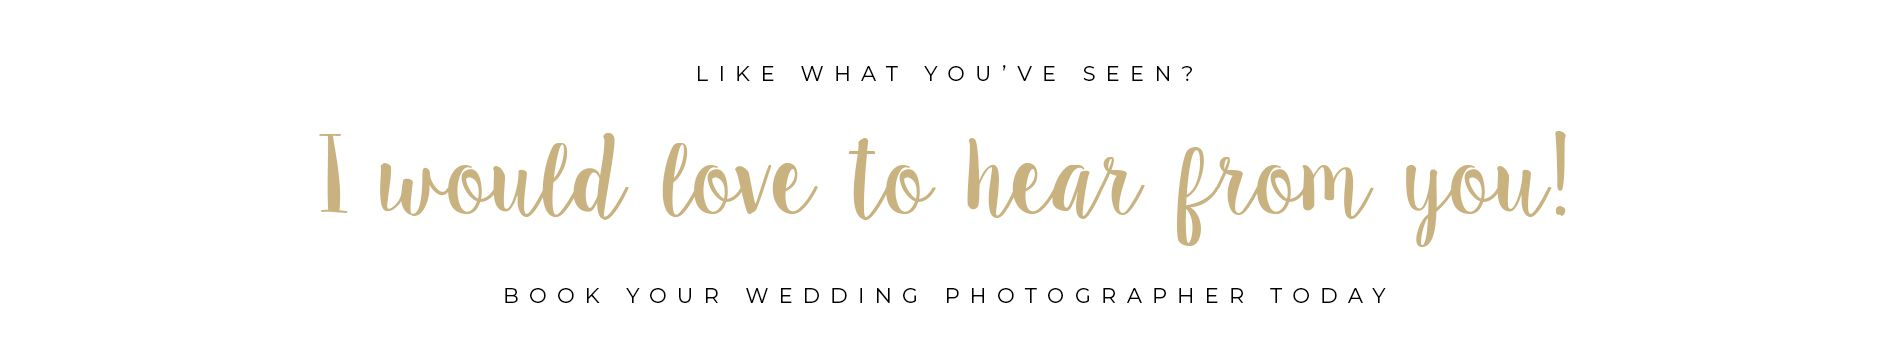 Contact Norwich & Norfolk Wedding Photographer today